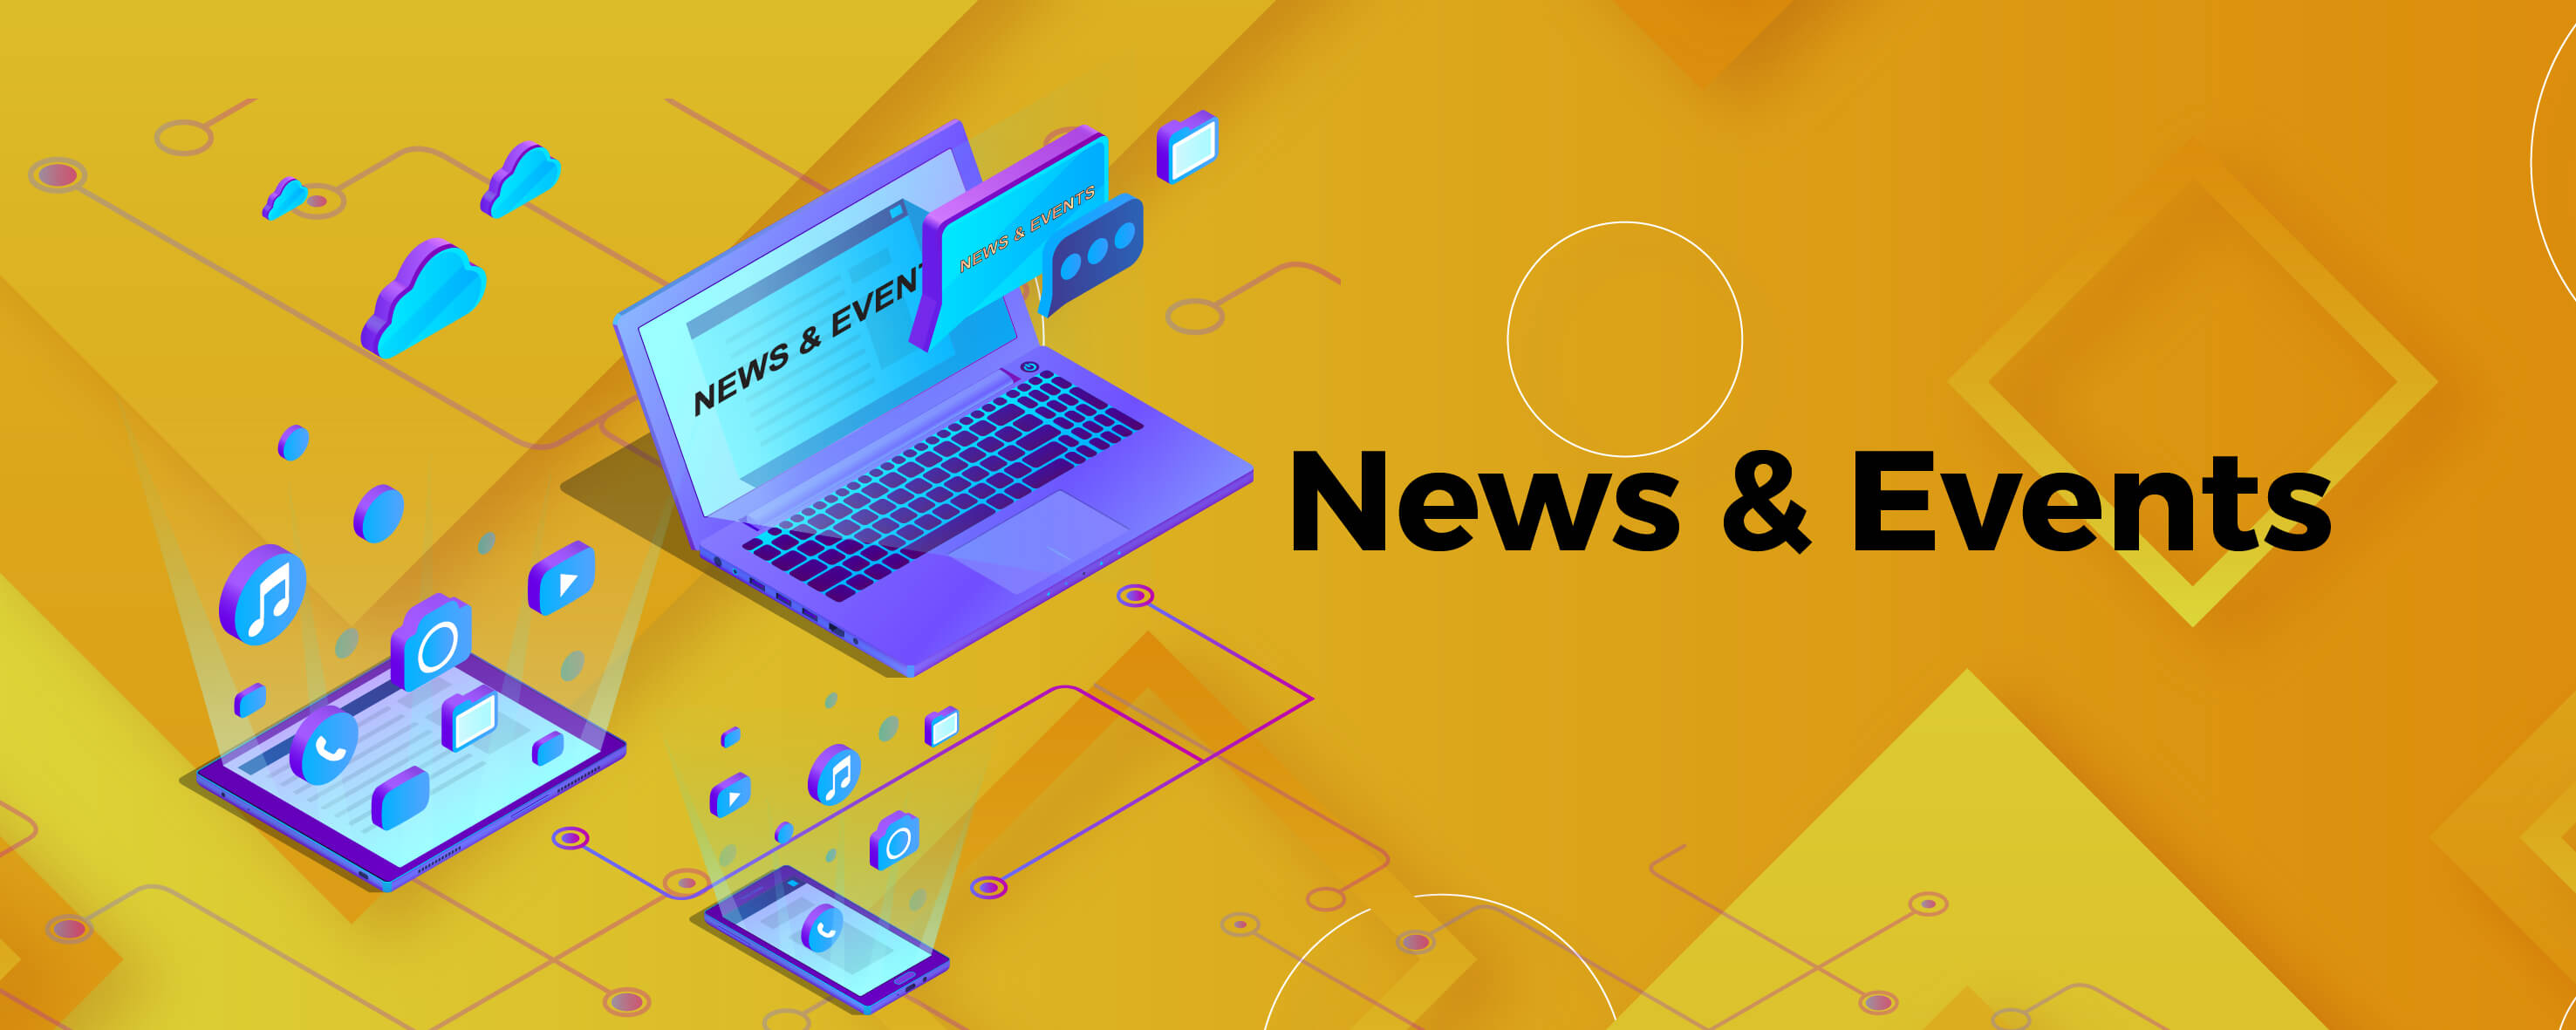 How to Get Your News and Event Announcement Across to Your Users?